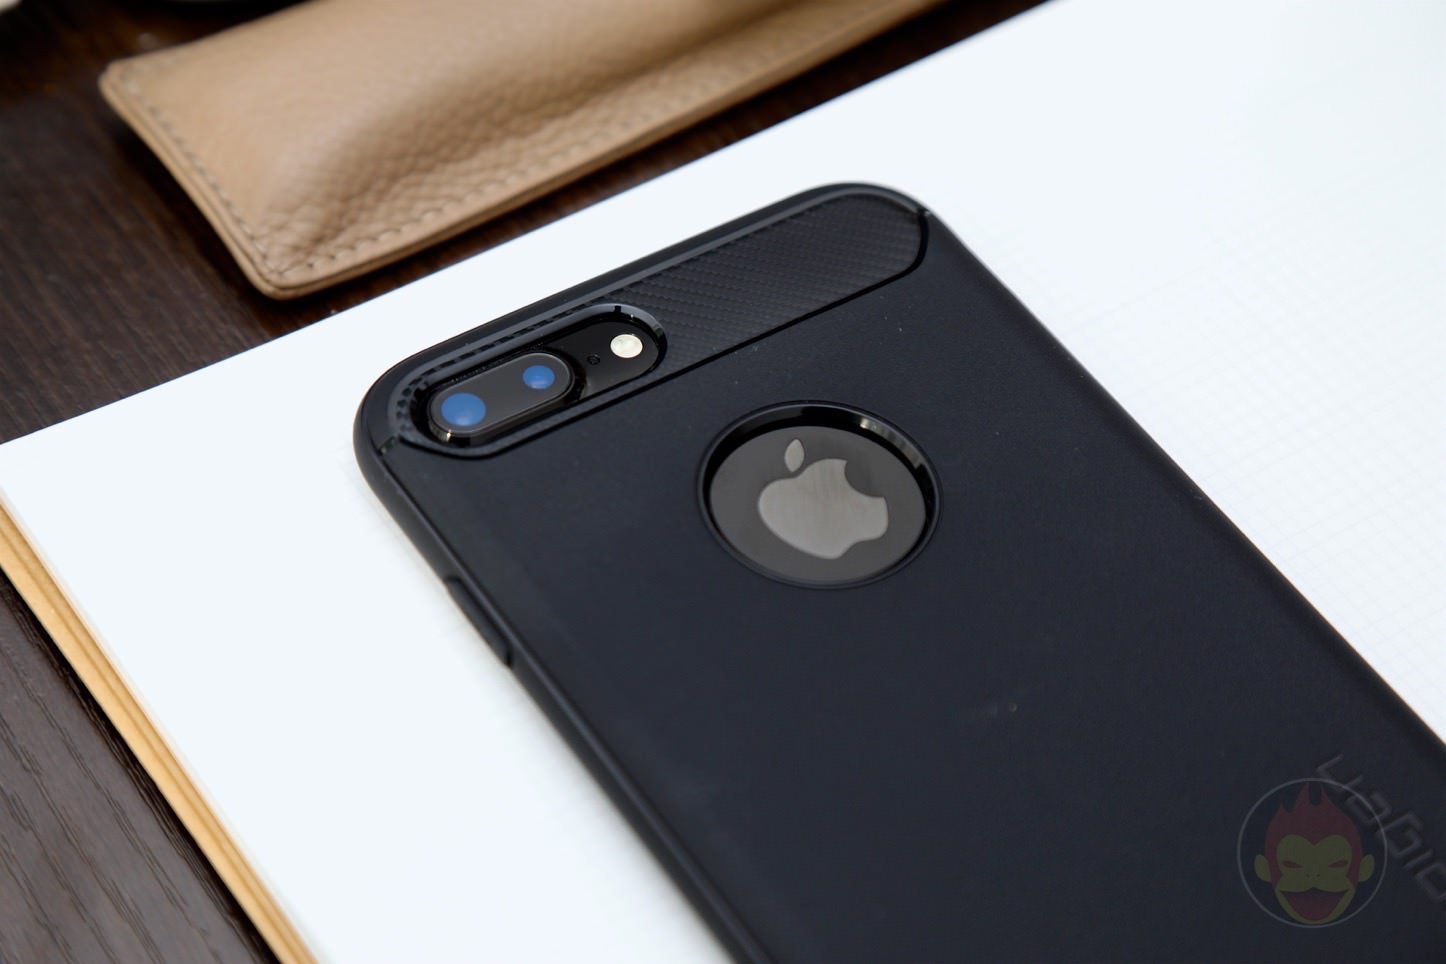 Rugged-Armor-for-iPhone7-7Plus-13.jpg